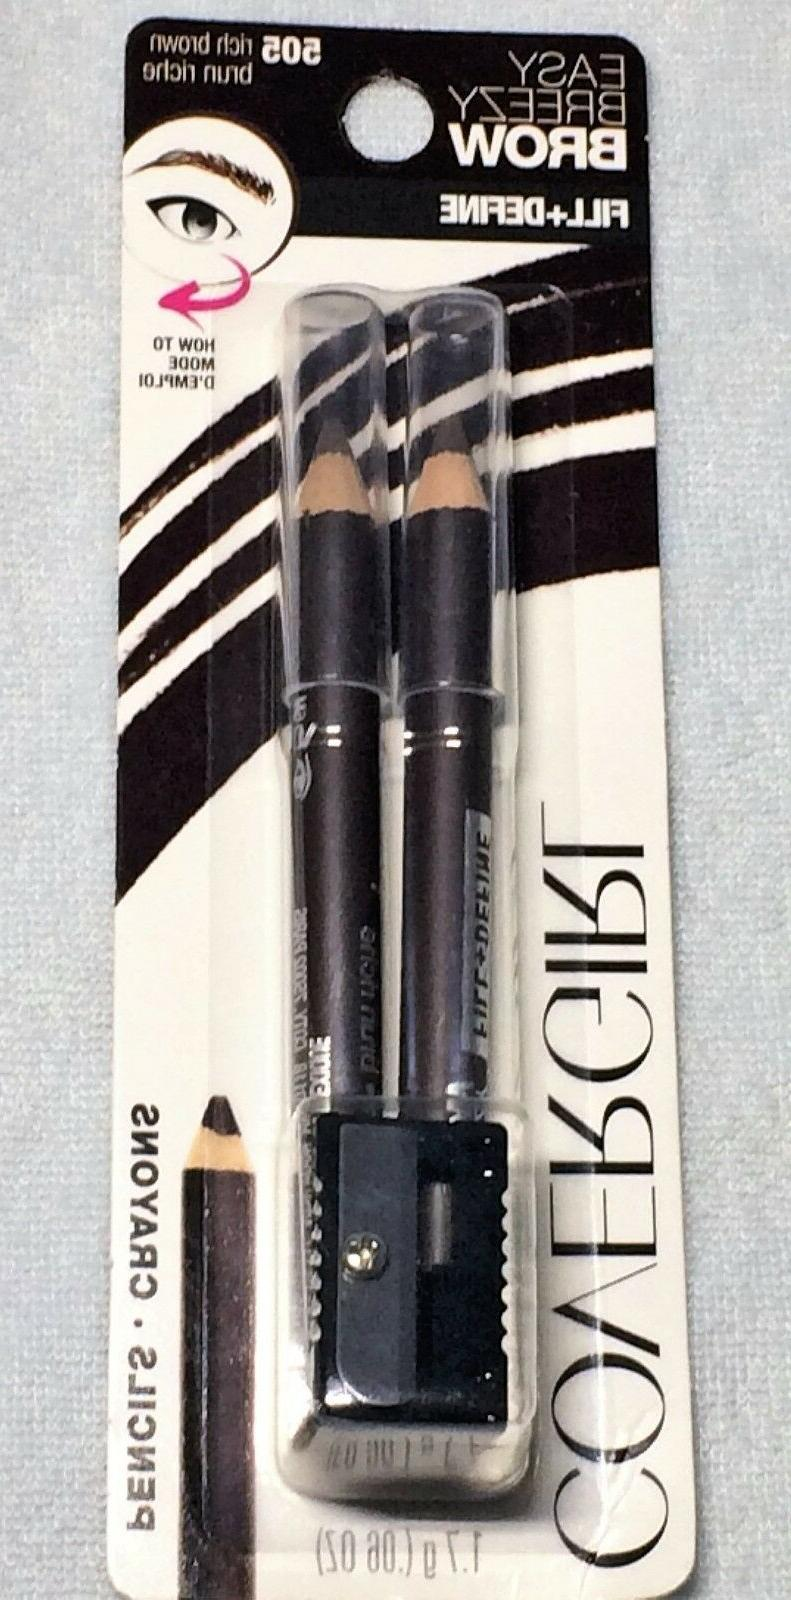 COVERGIRL EYEBROW & EYEMAKERS WATER RESISTANT PENCIL, .06 OZ